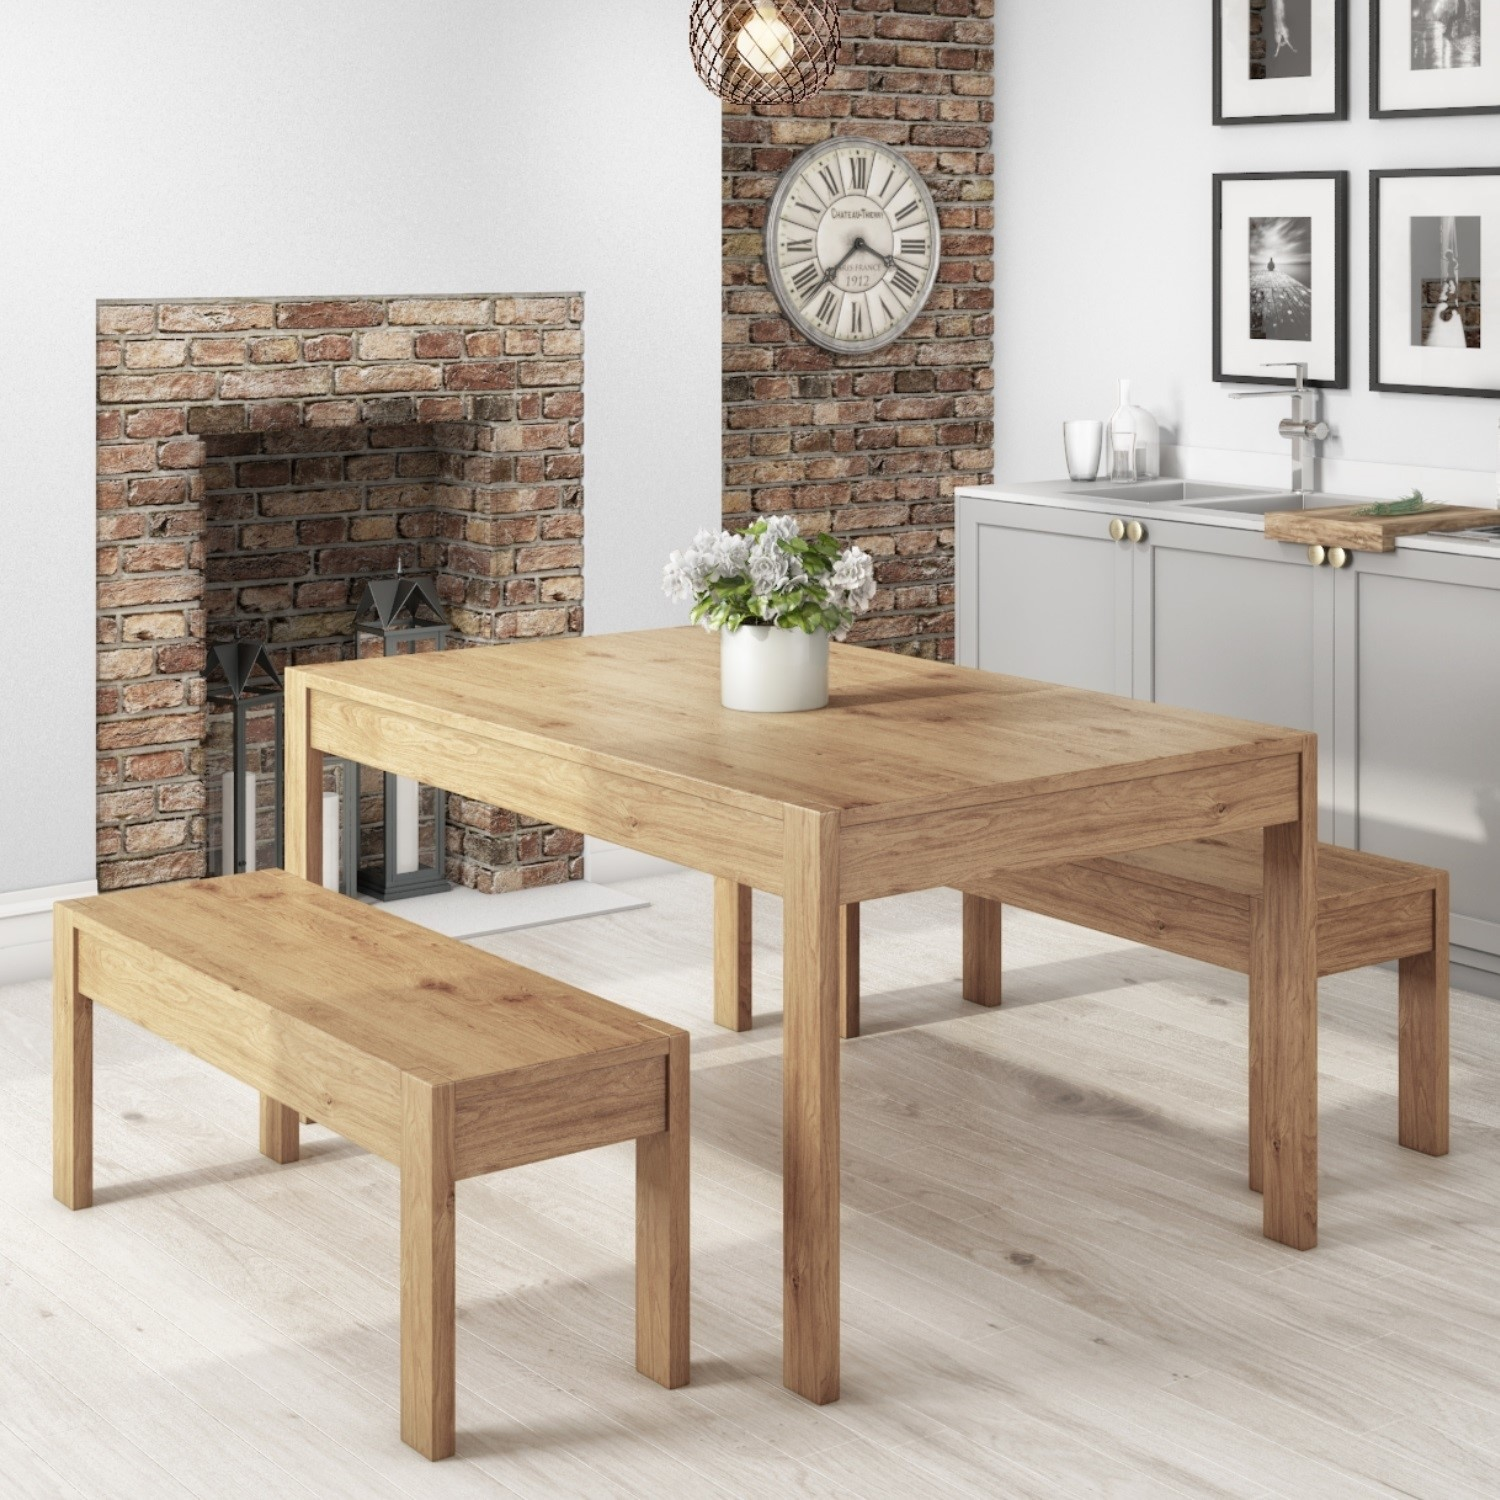 Emerson Solid Pine Rectangle Dining Table With 2 Dining Benches Furniture123